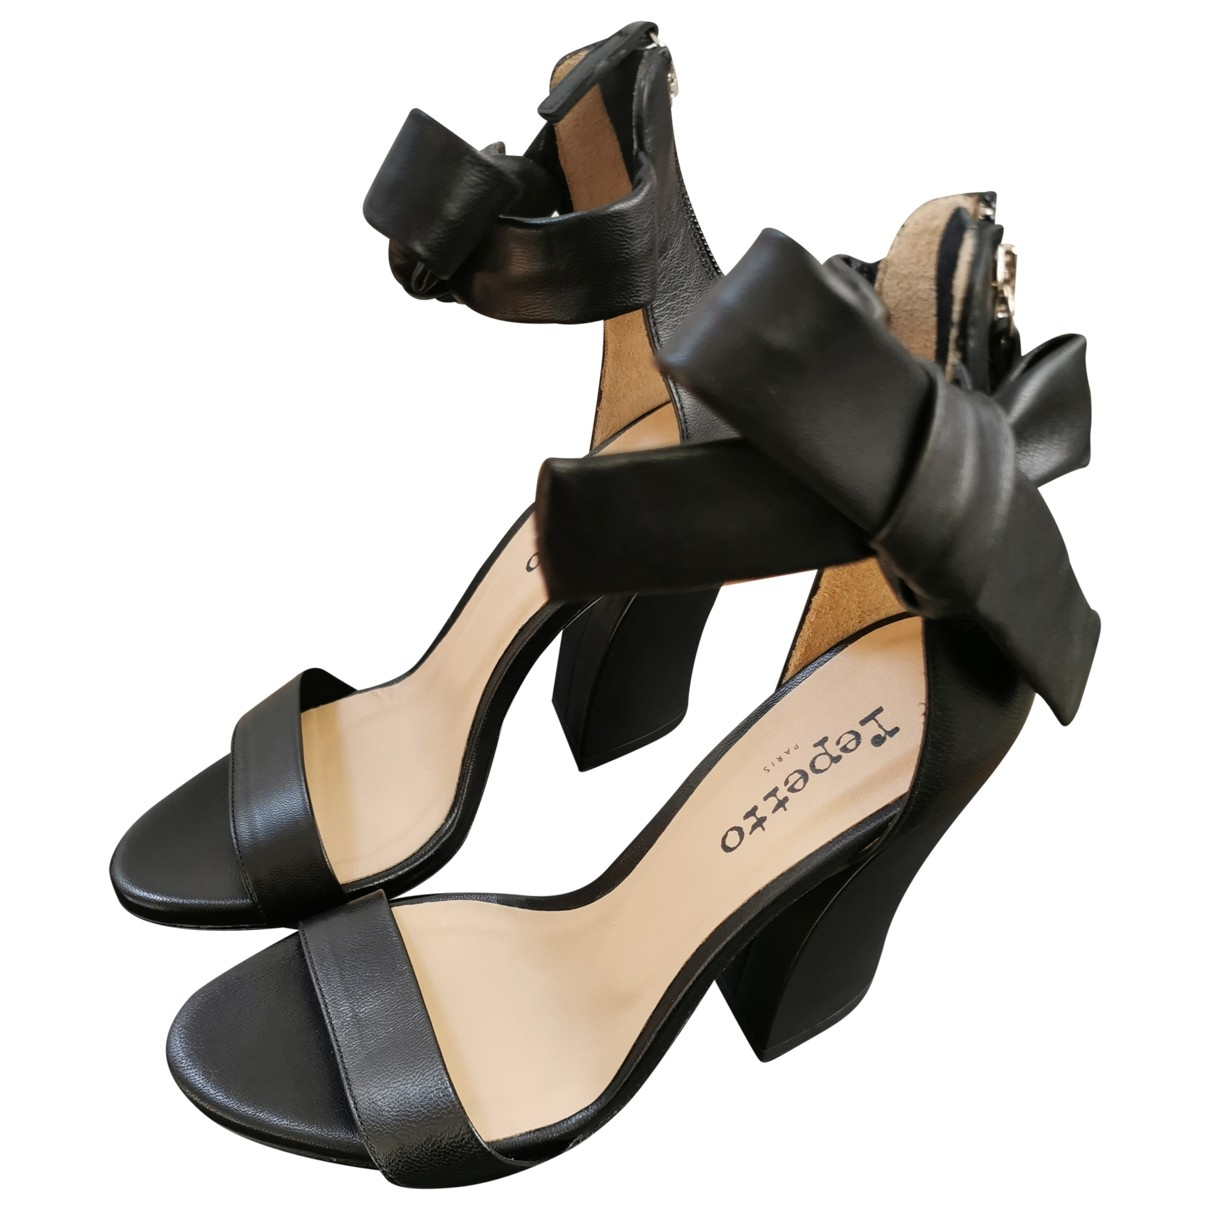 Repetto \N Black Leather Sandals for Women 39 EU